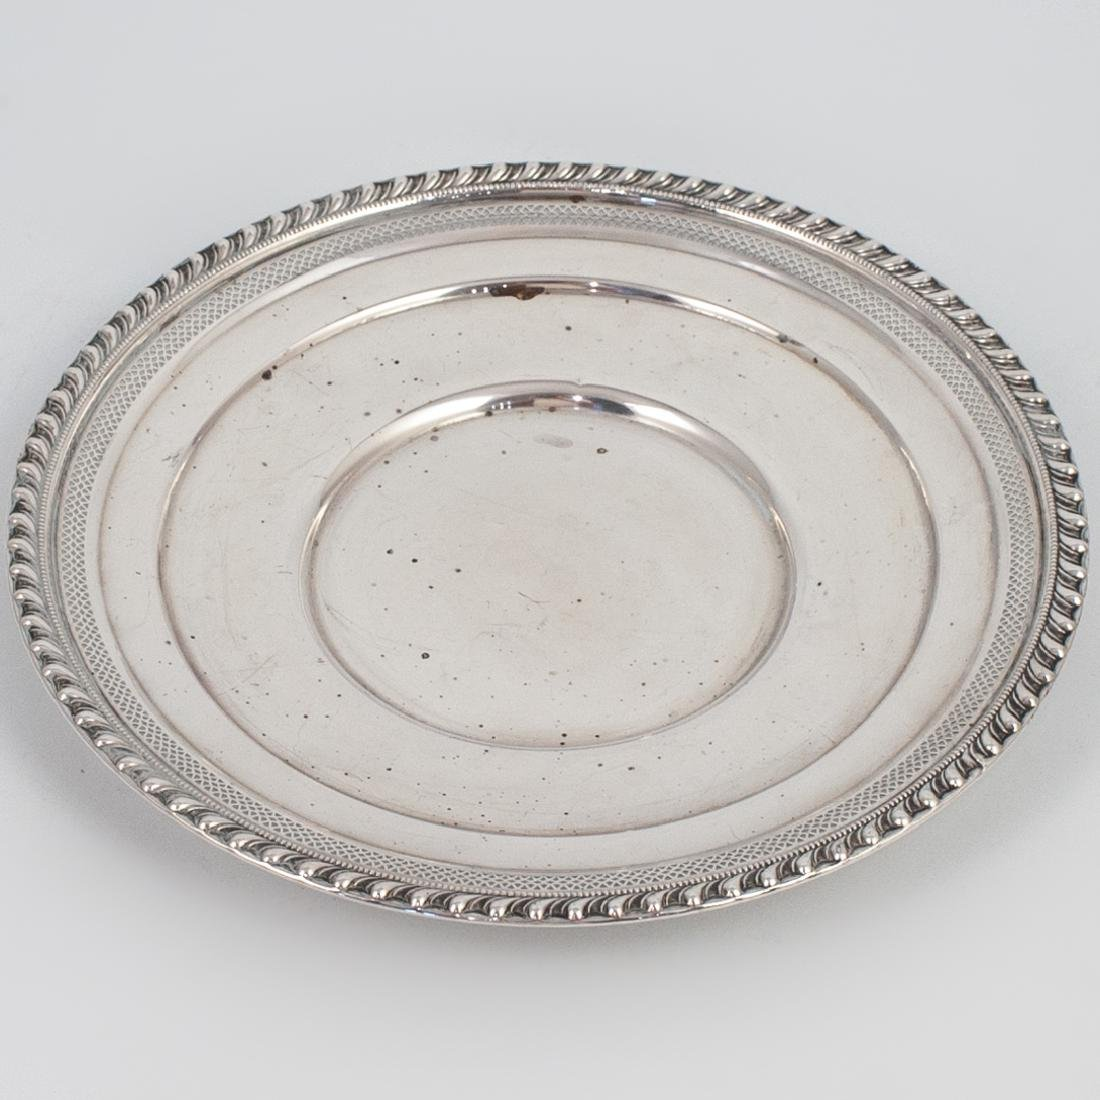 American Sterling Silver Serving Tray